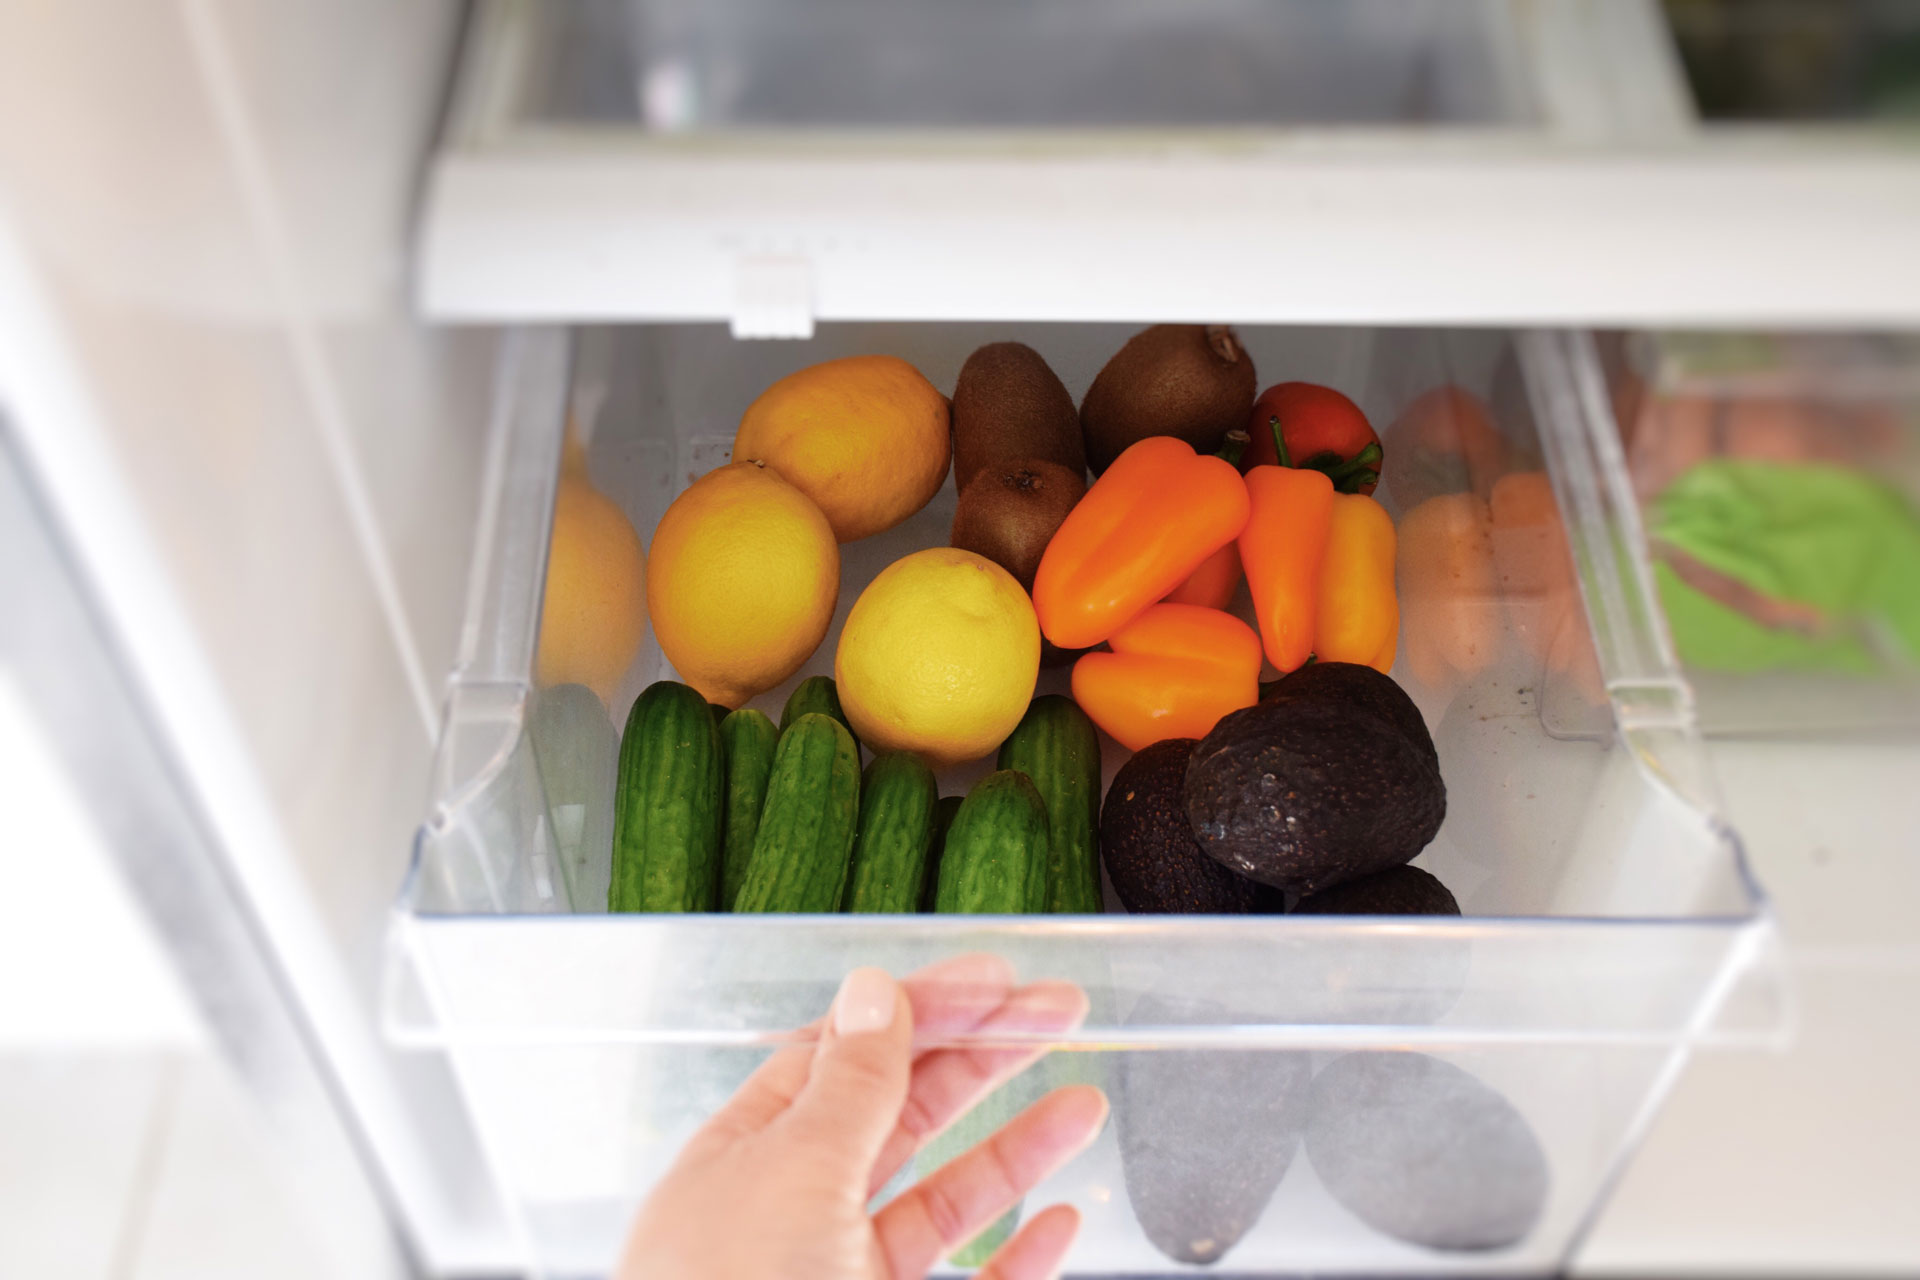 Person opening a vegetable drawer in a refrigerator